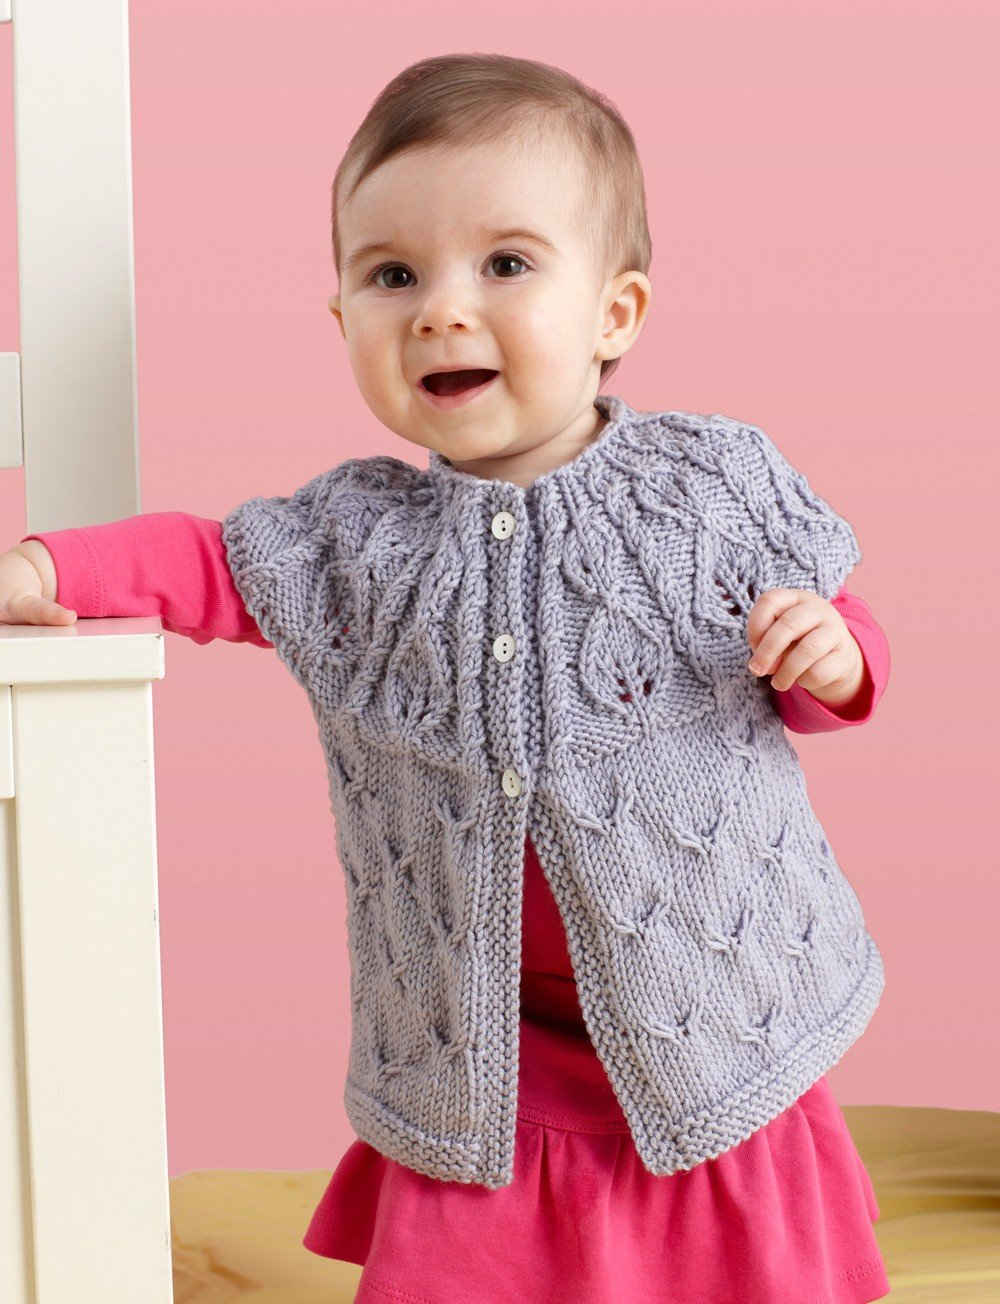 Knitted Cardigan Pattern For Toddler : 10+ Free Baby Sweater Knitting Patterns